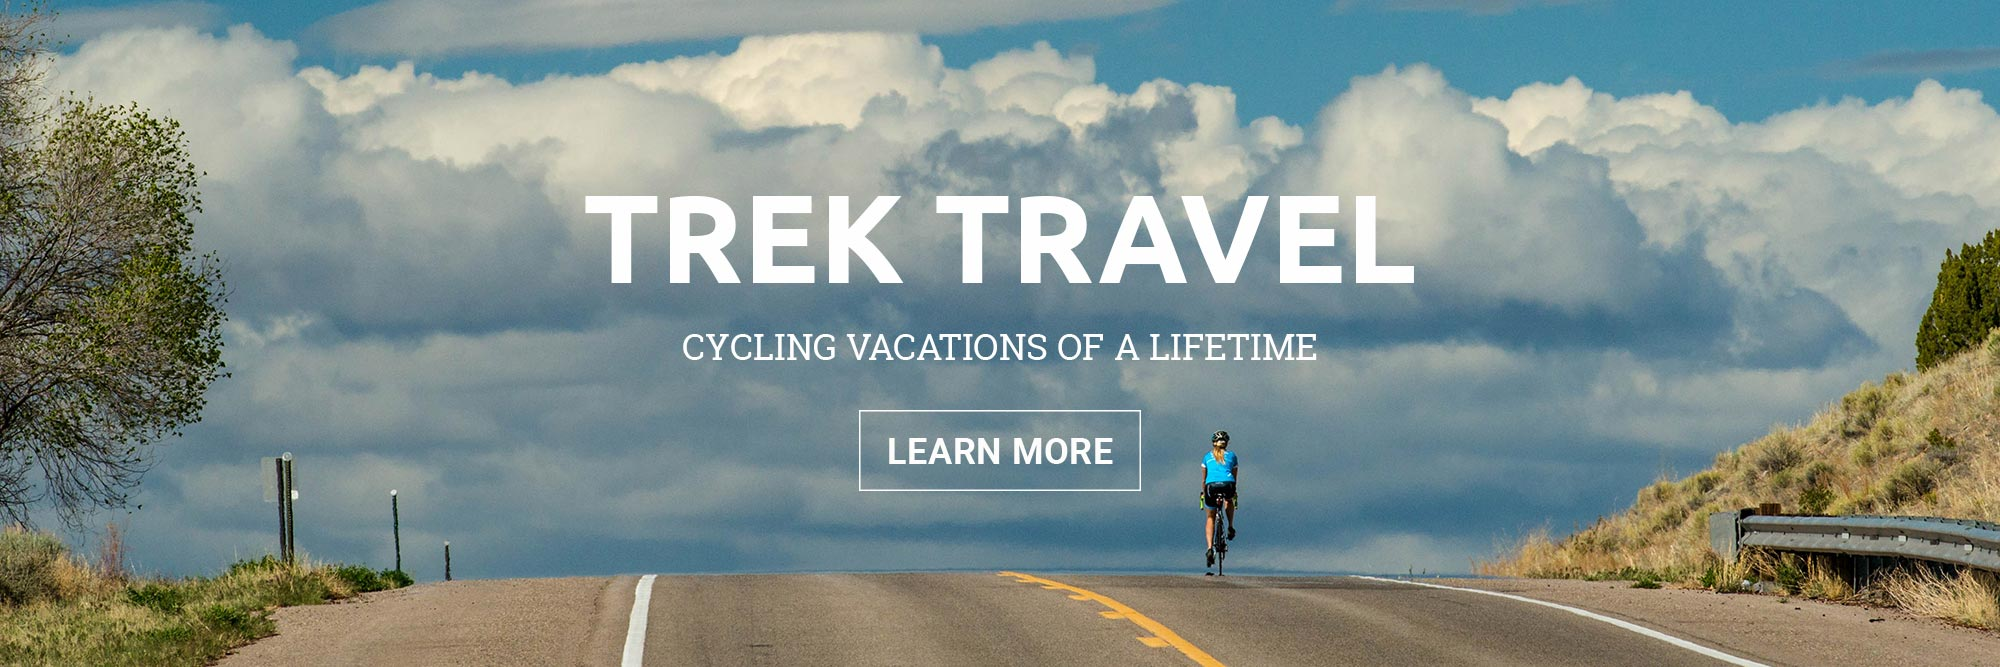 Explore Trek Trave